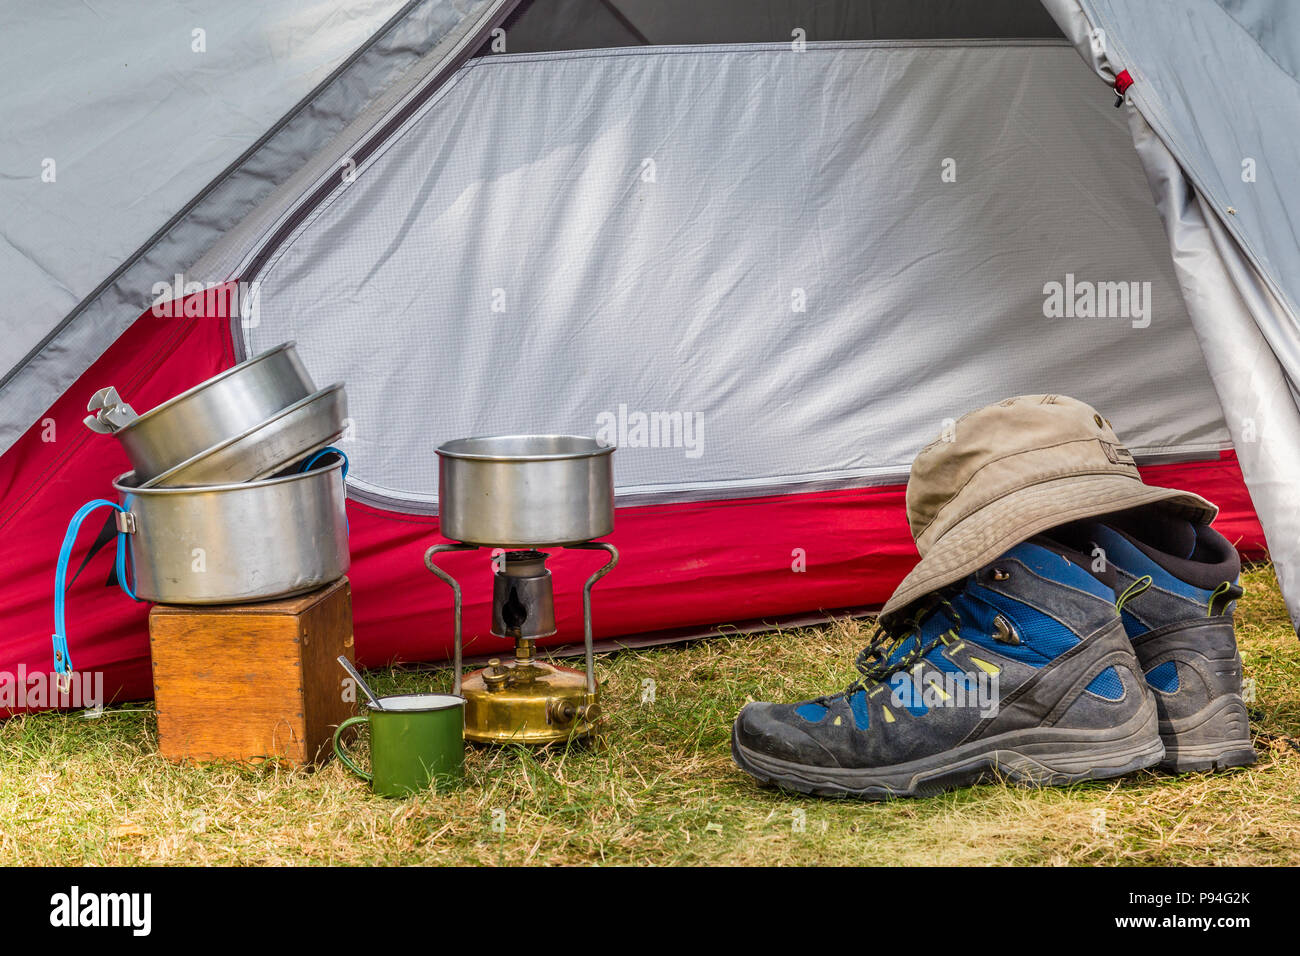 Cooking equipment on a campsite - Stock Image